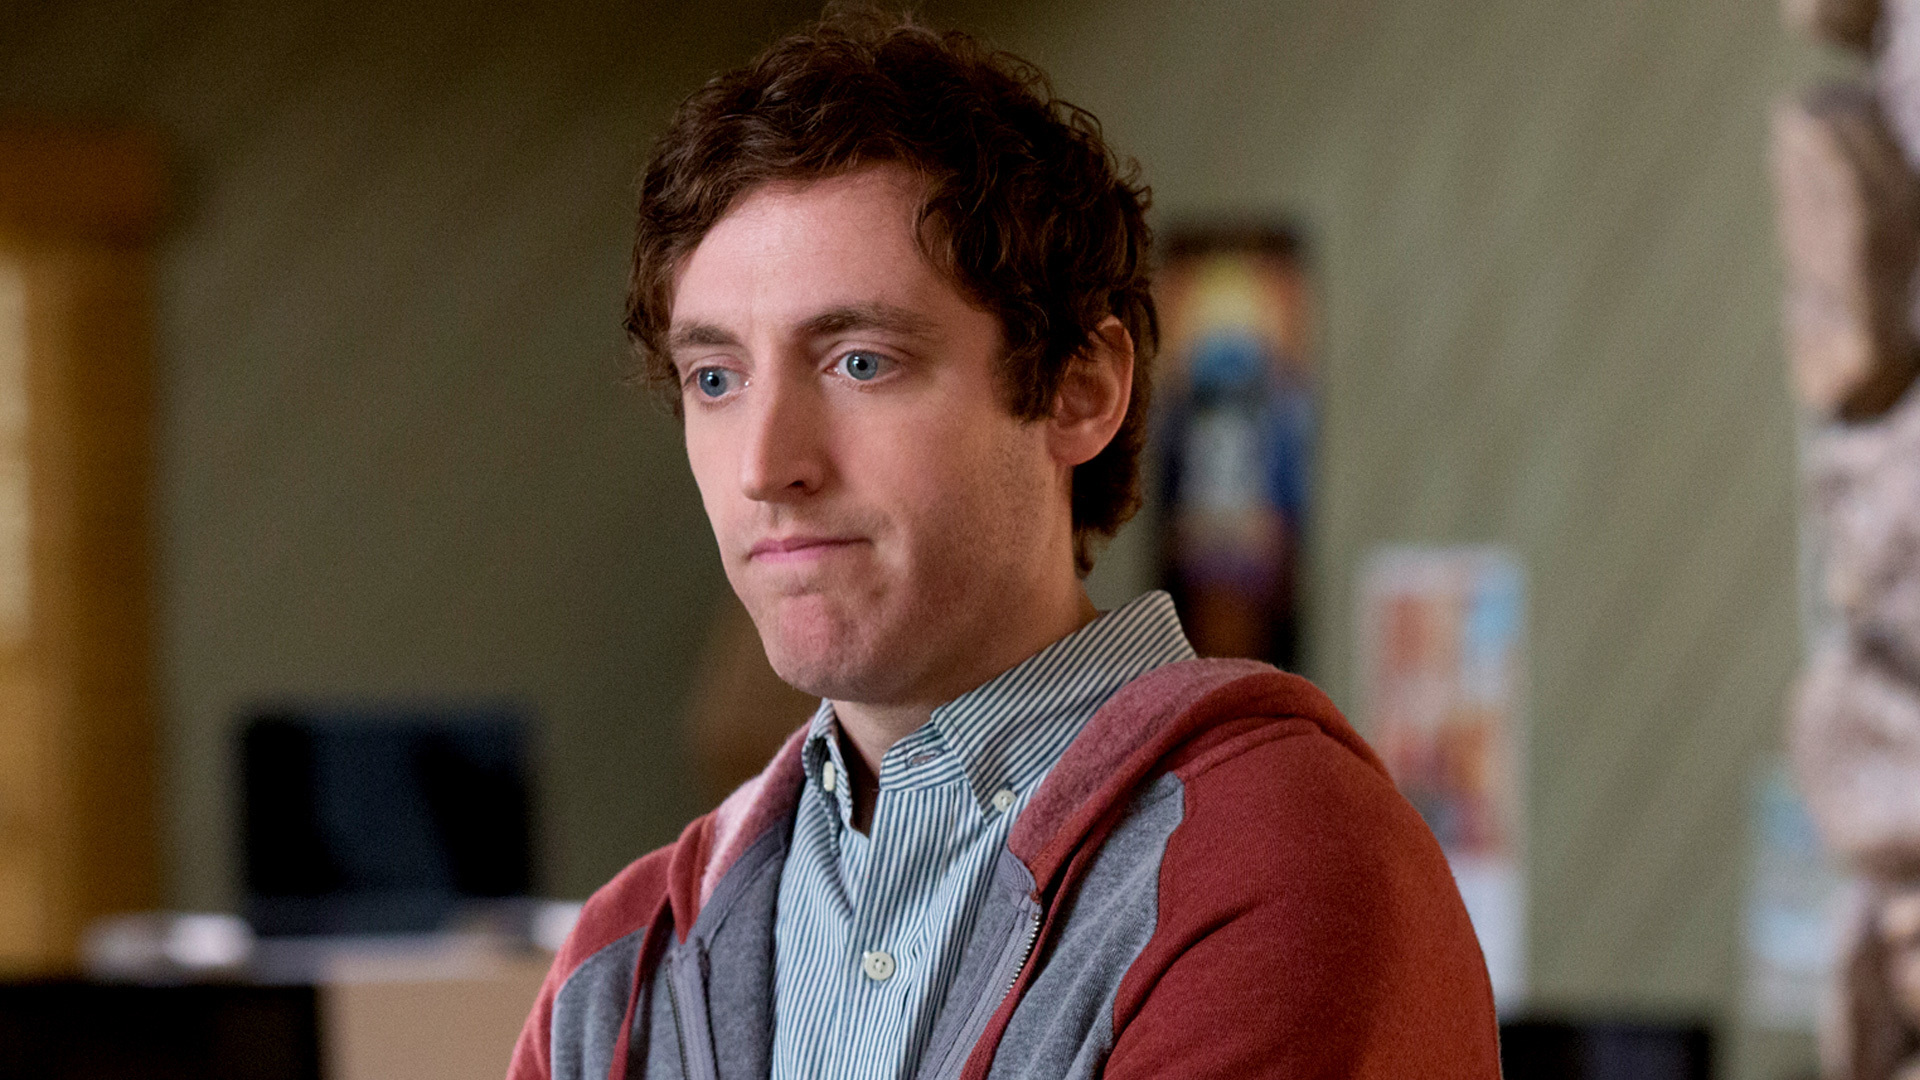 Silicon Valley Villains Turn On Each Other In Riveting Episode